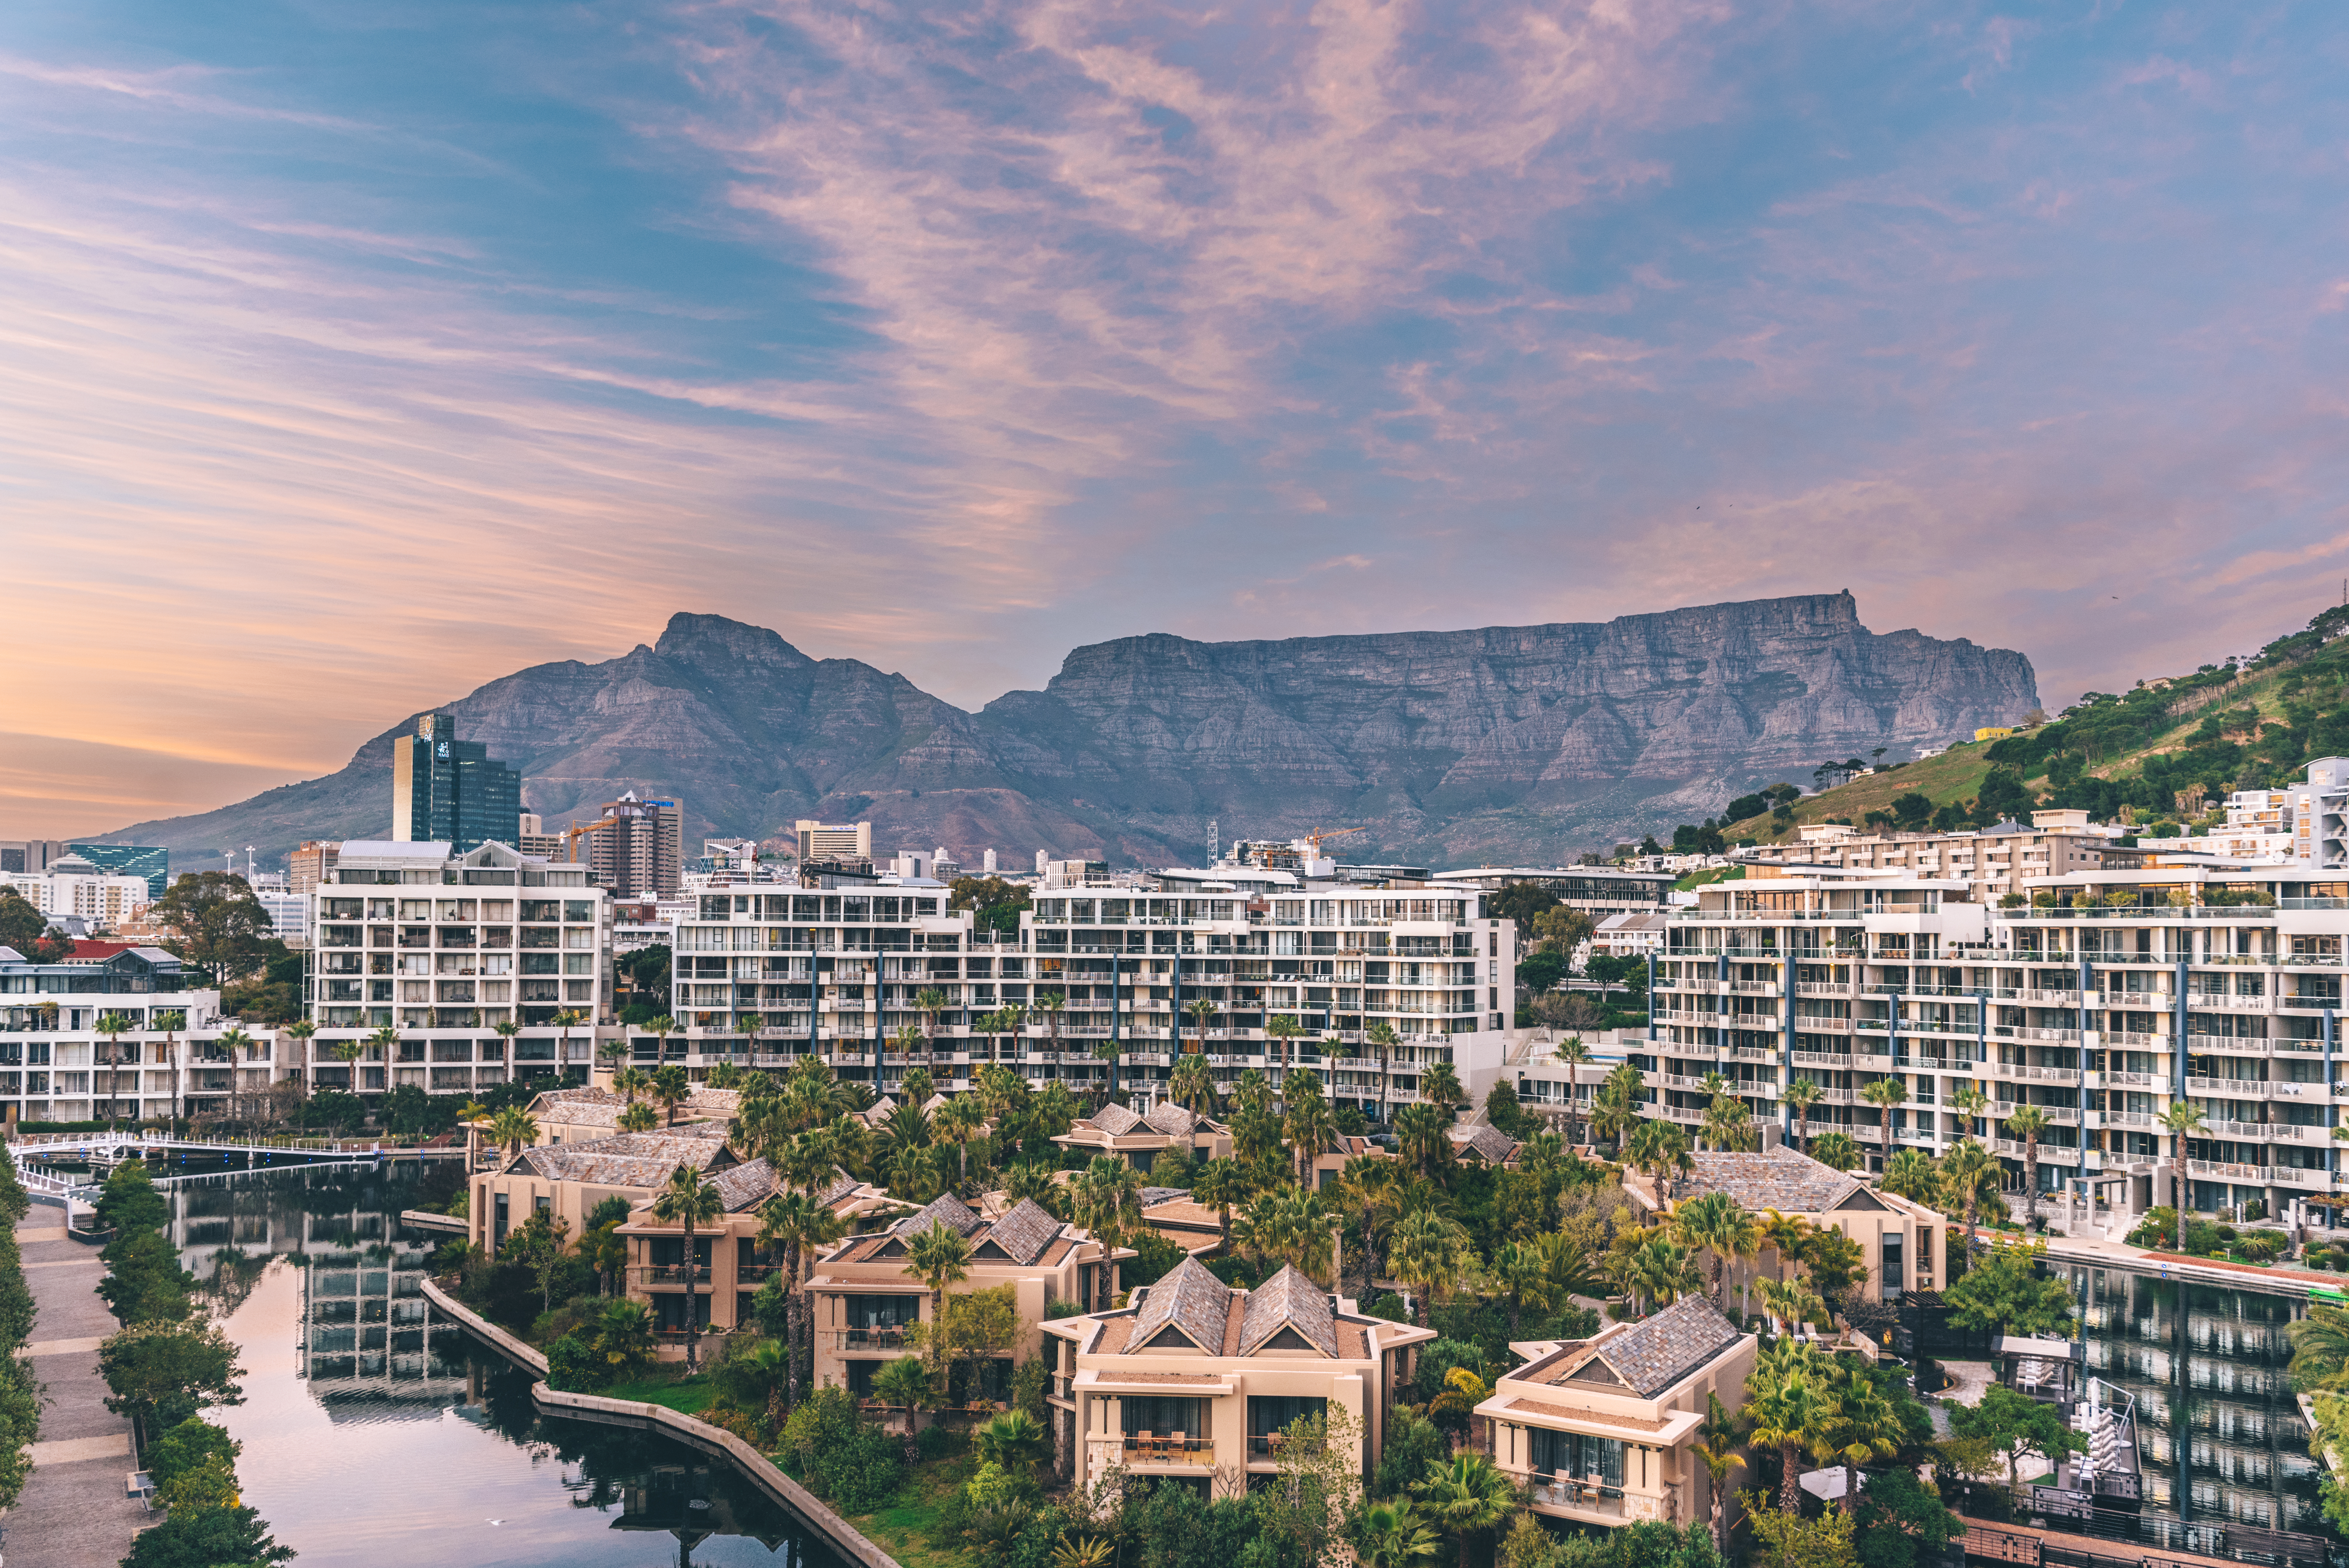 DISCOVER A CITY OF STORIES THIS SUMMER WITH ONE&ONLY CAPE TOWN